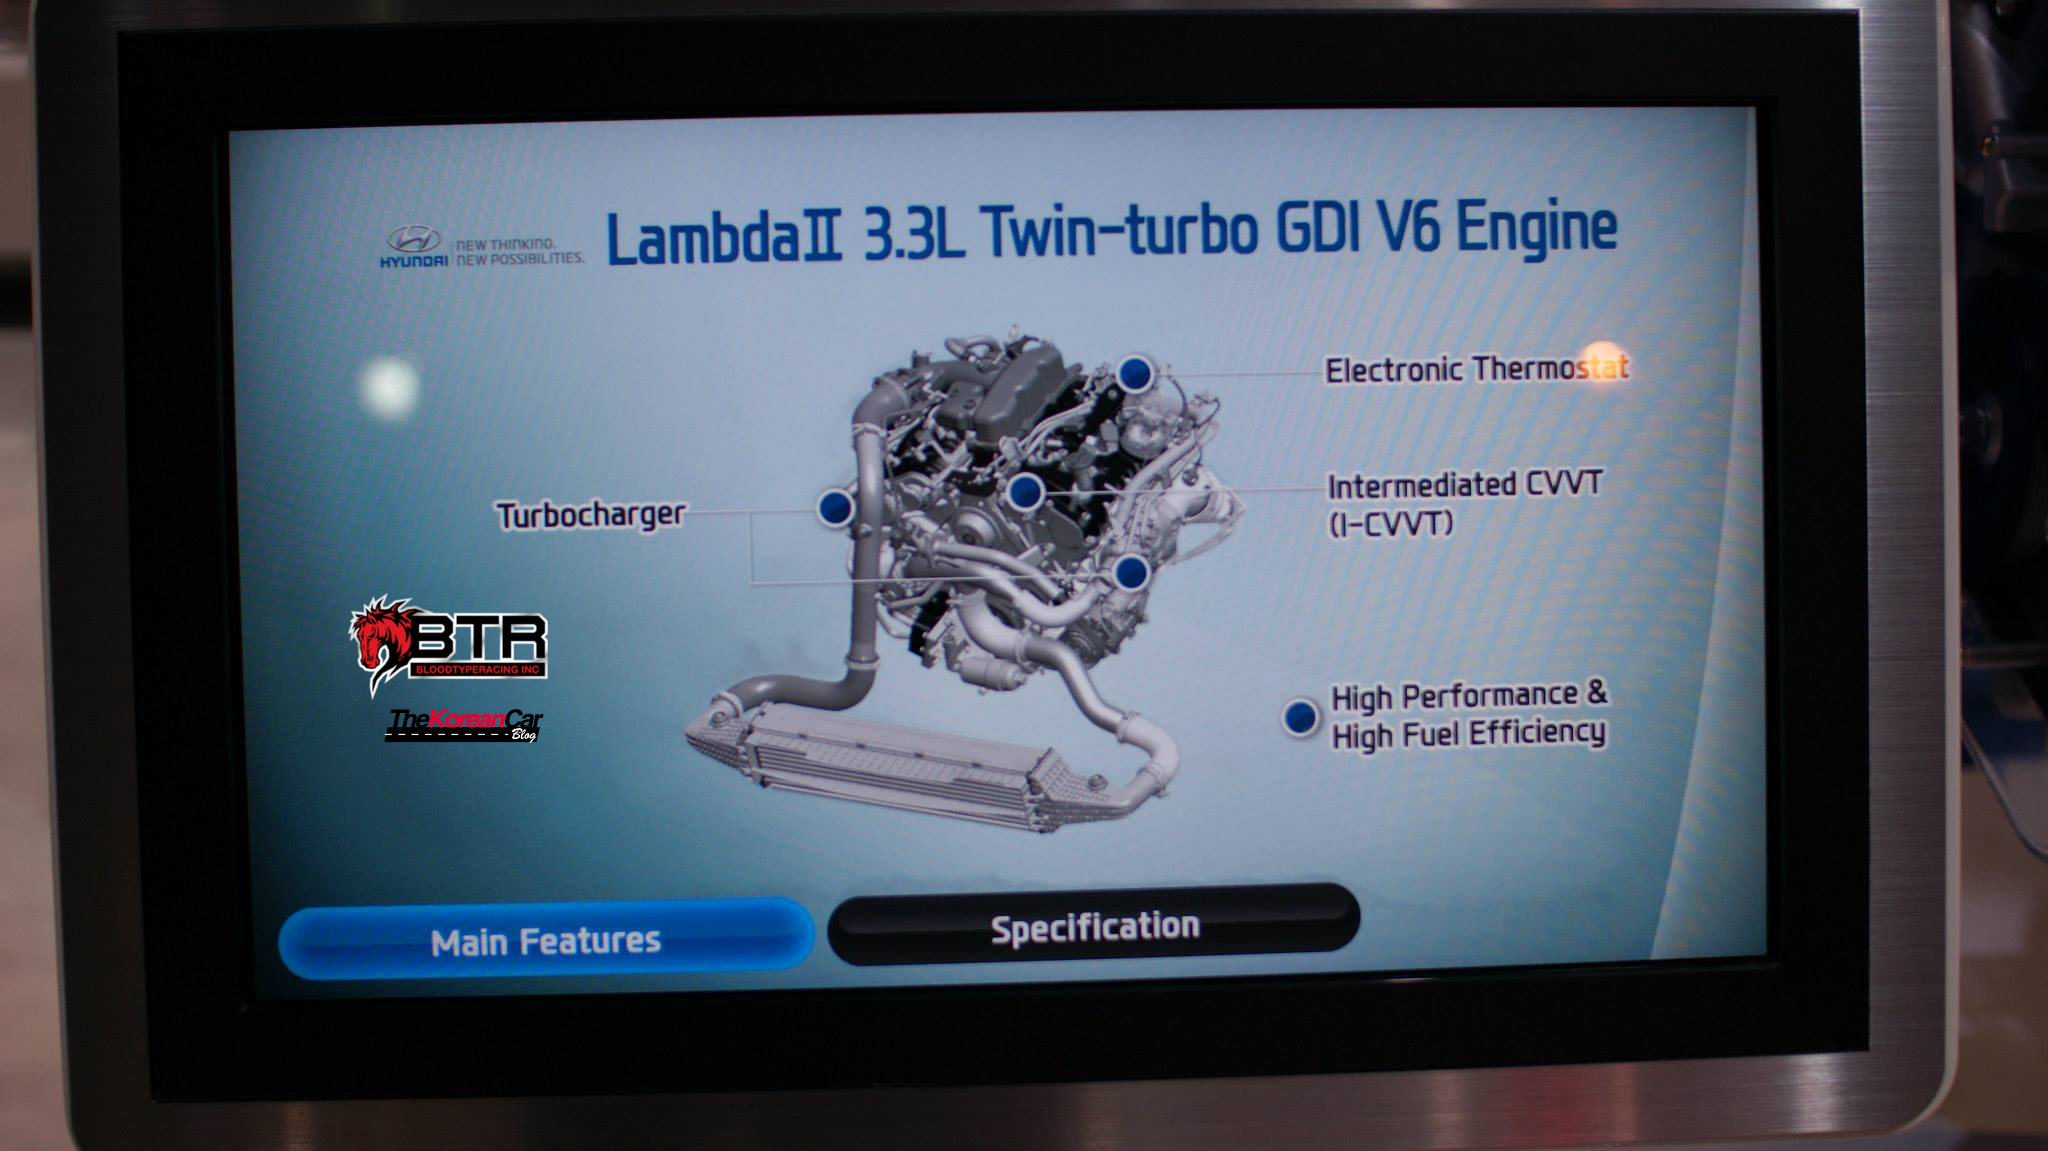 Exclusive: Hyundai 3.3 Turbo GDi V6 Engine